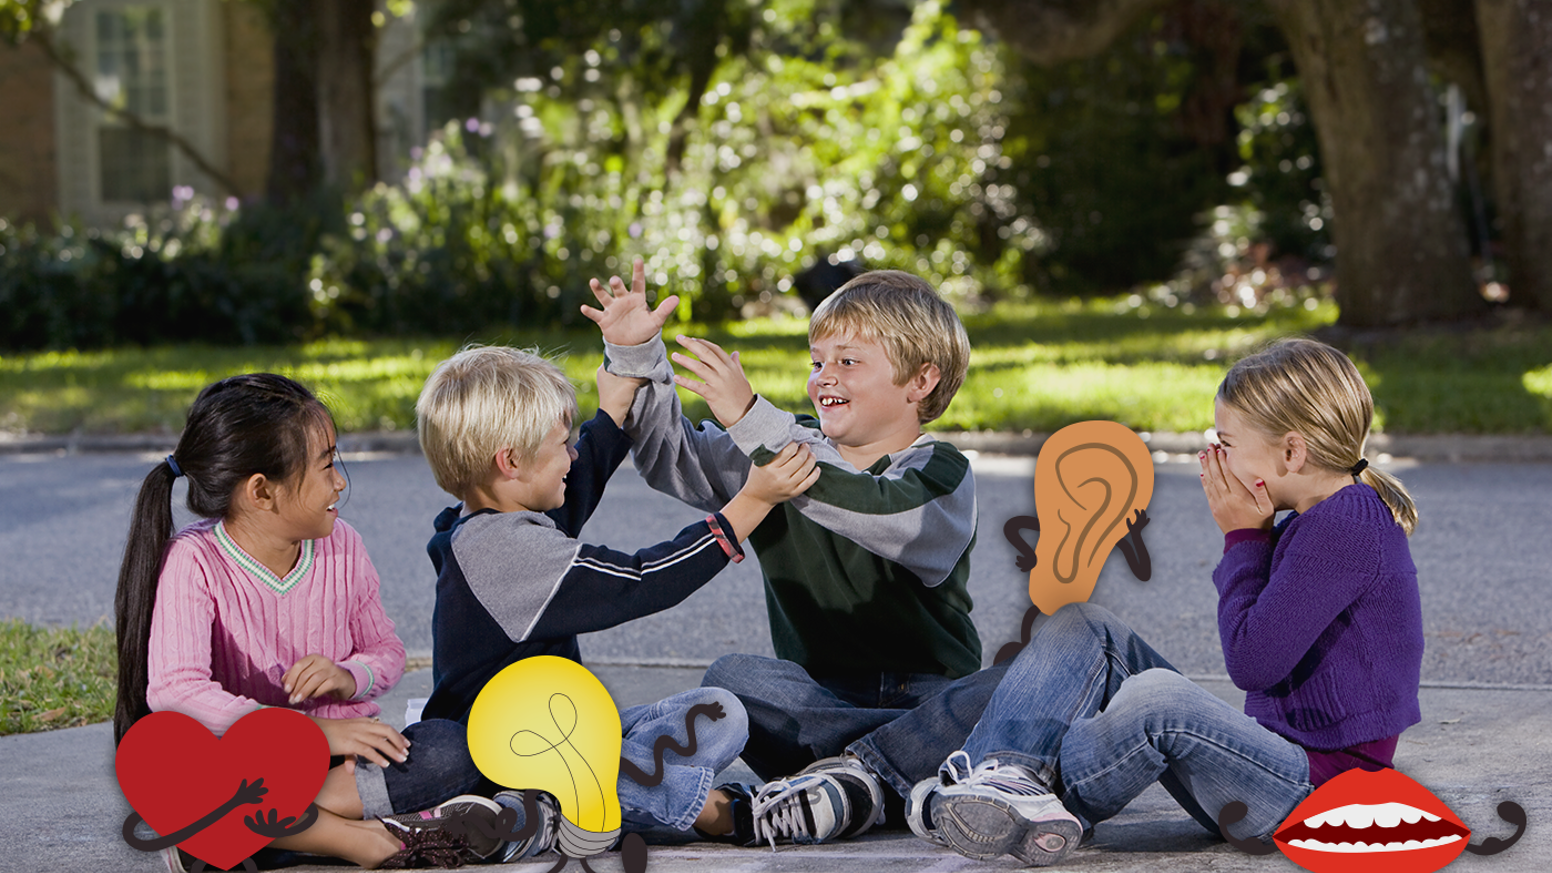 Angry Kids Dealing With Explosive >> Grab The Wheel Help Young Children Manage Explosive Anger By Bryan